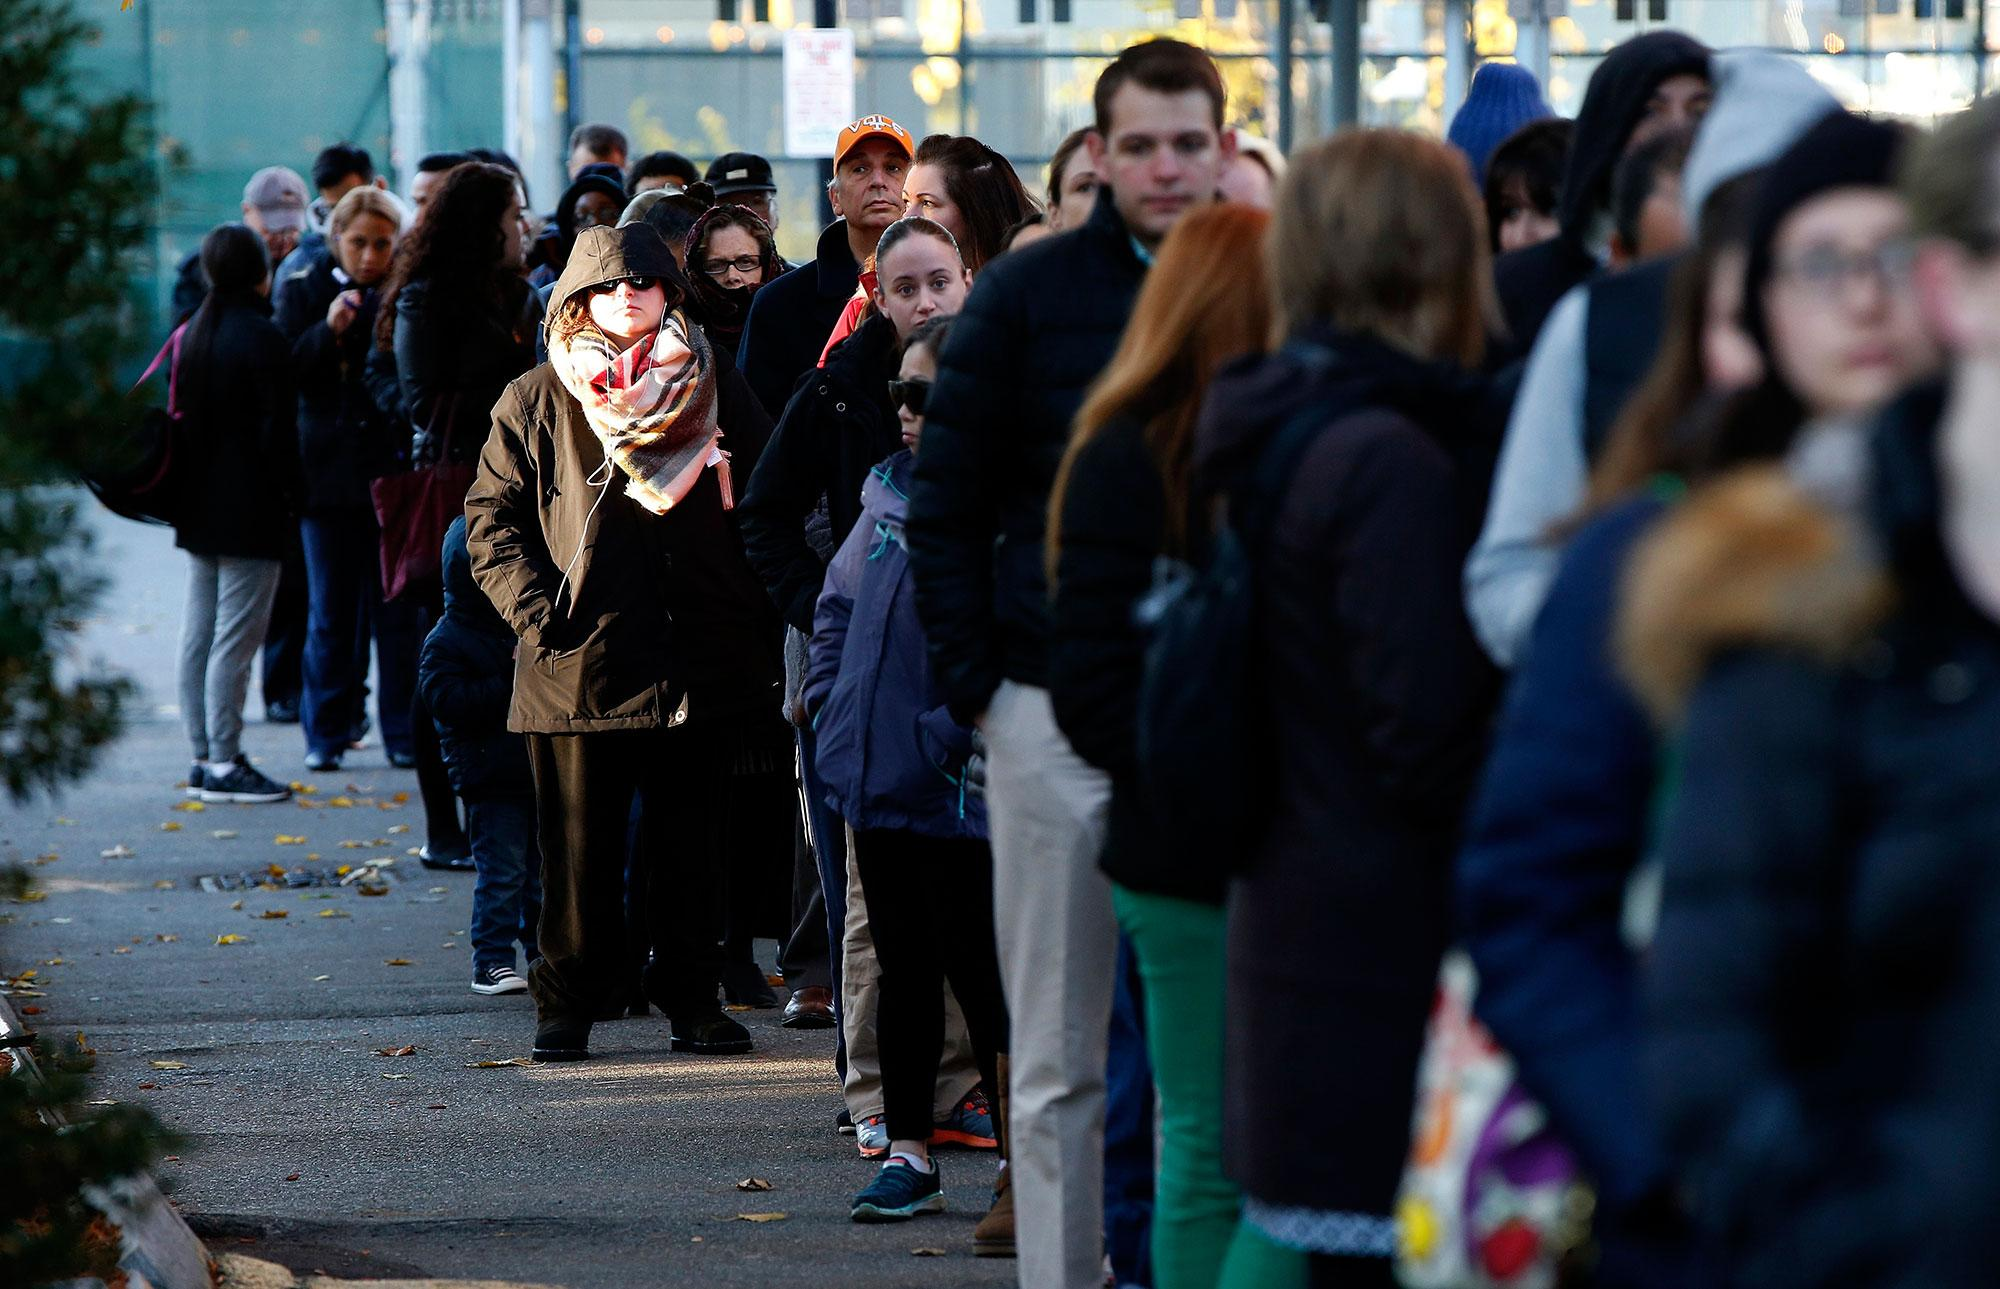 <p>People line up to vote in the East Boston neighborhood of Boston, Tuesday, Nov. 7, 2016. (Photo: Michael Dwyer/AP) </p>